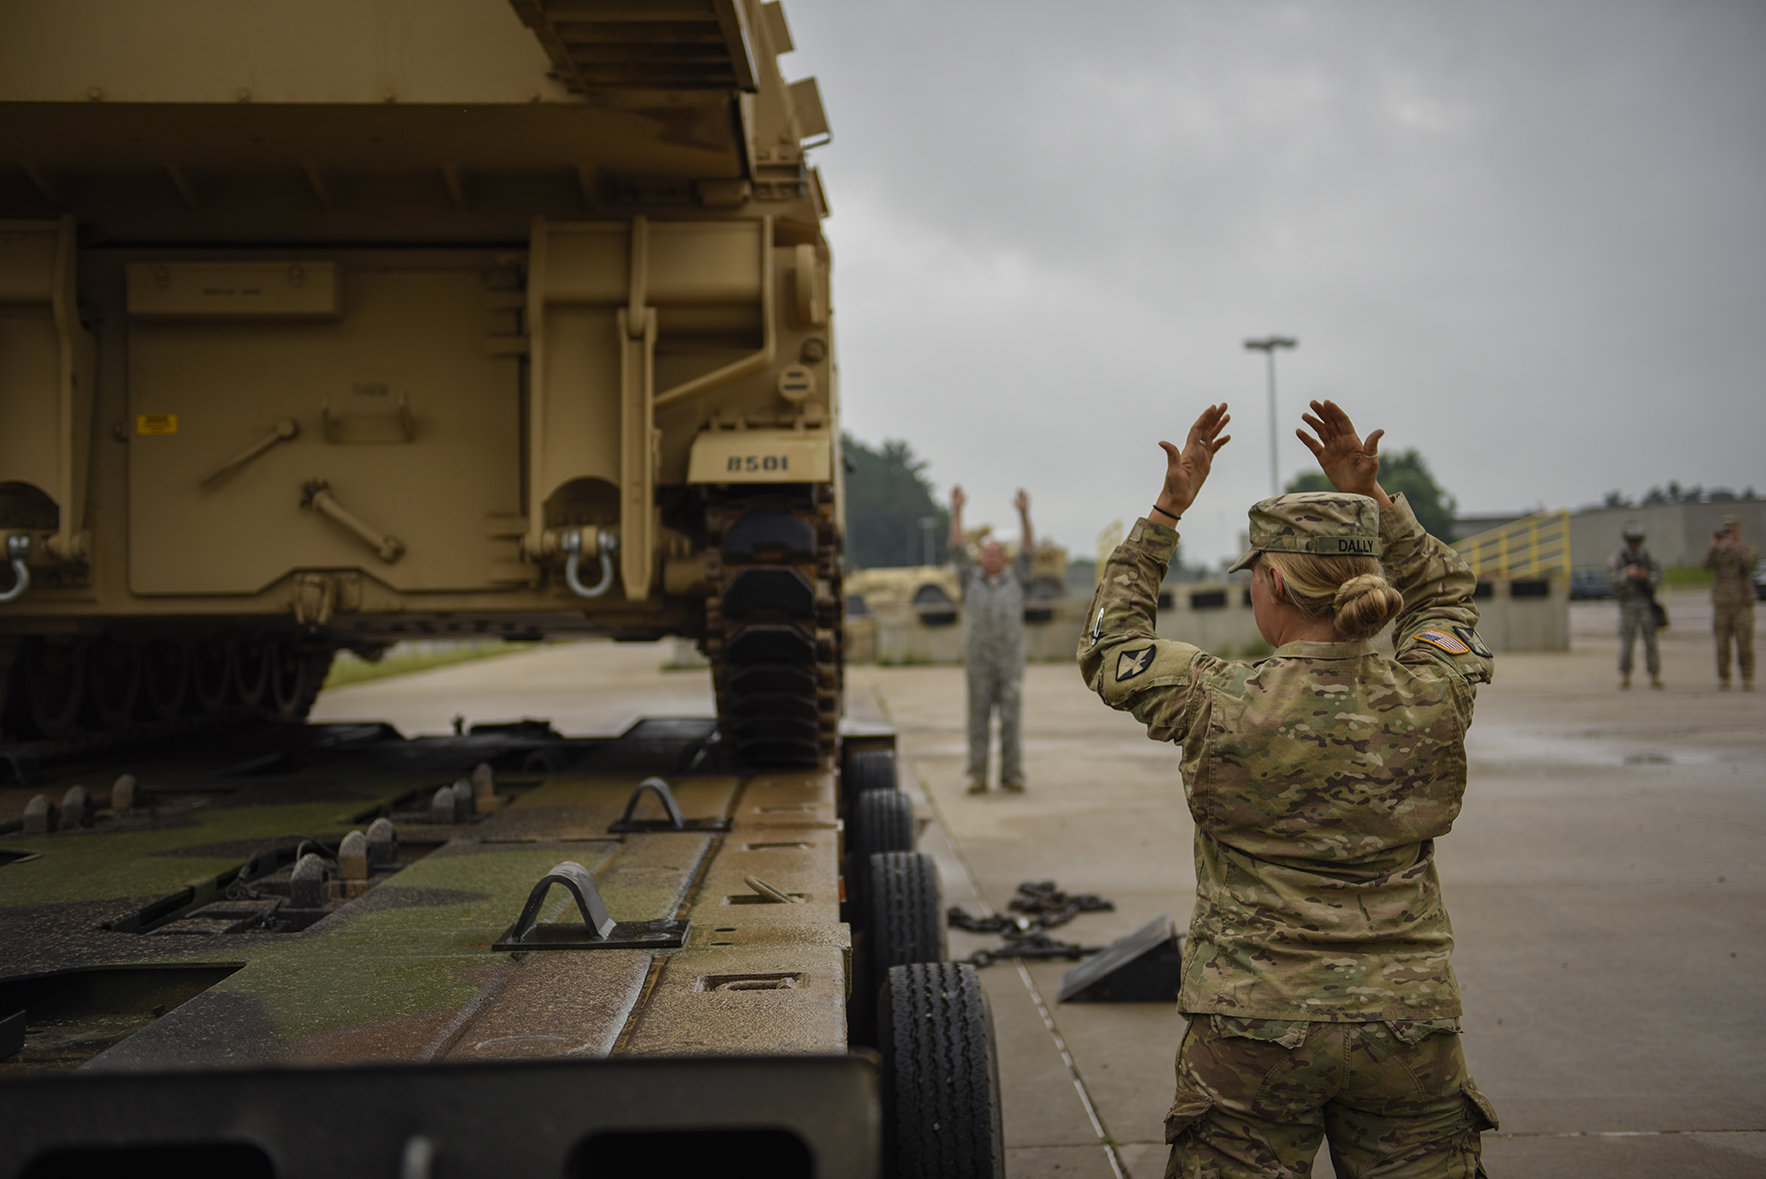 Pfc. Lydia Dally guides a Paladin Howitzer onto a trailer, helping the 1st Battalion, 125th Field Artillery, move their equipment back to home station following their annual training at Camp Ripley. Dally, with the 114th Transportation Company, was one of several team members guiding the precision load on Aug. 14, 2017. (Minnesota National Guard photo by Staff Sgt. Patrick Loch)